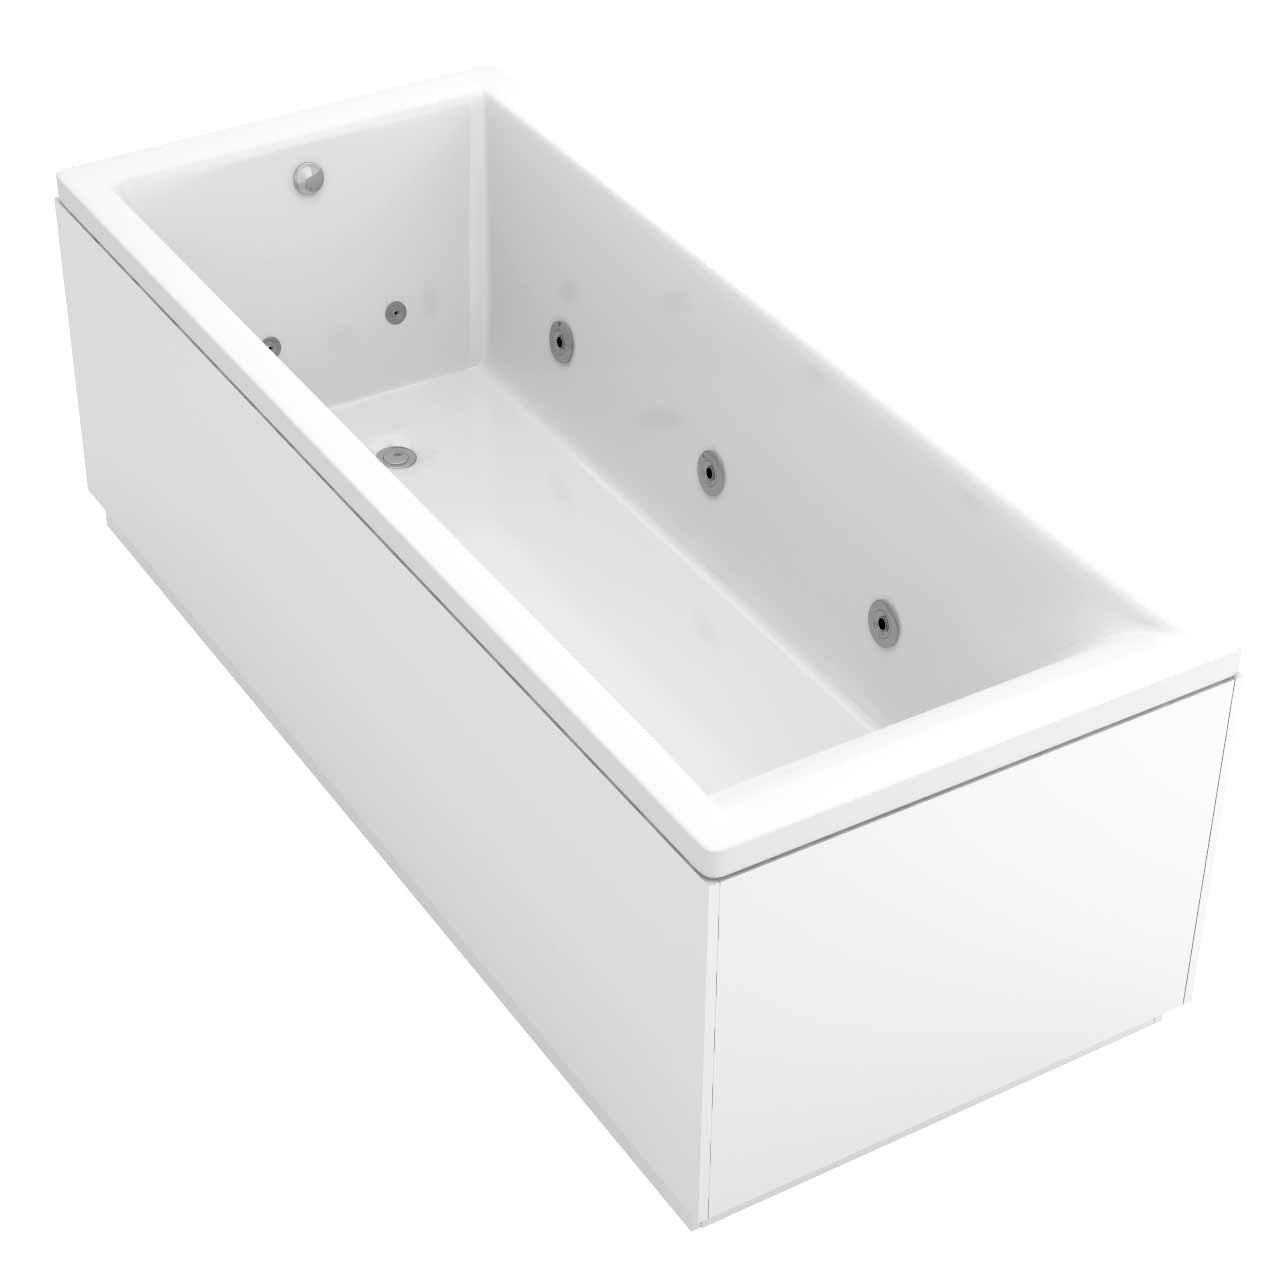 Summit End Tap 12 Jet Chrome Flat Jet Whirlpool Bath 1700x700